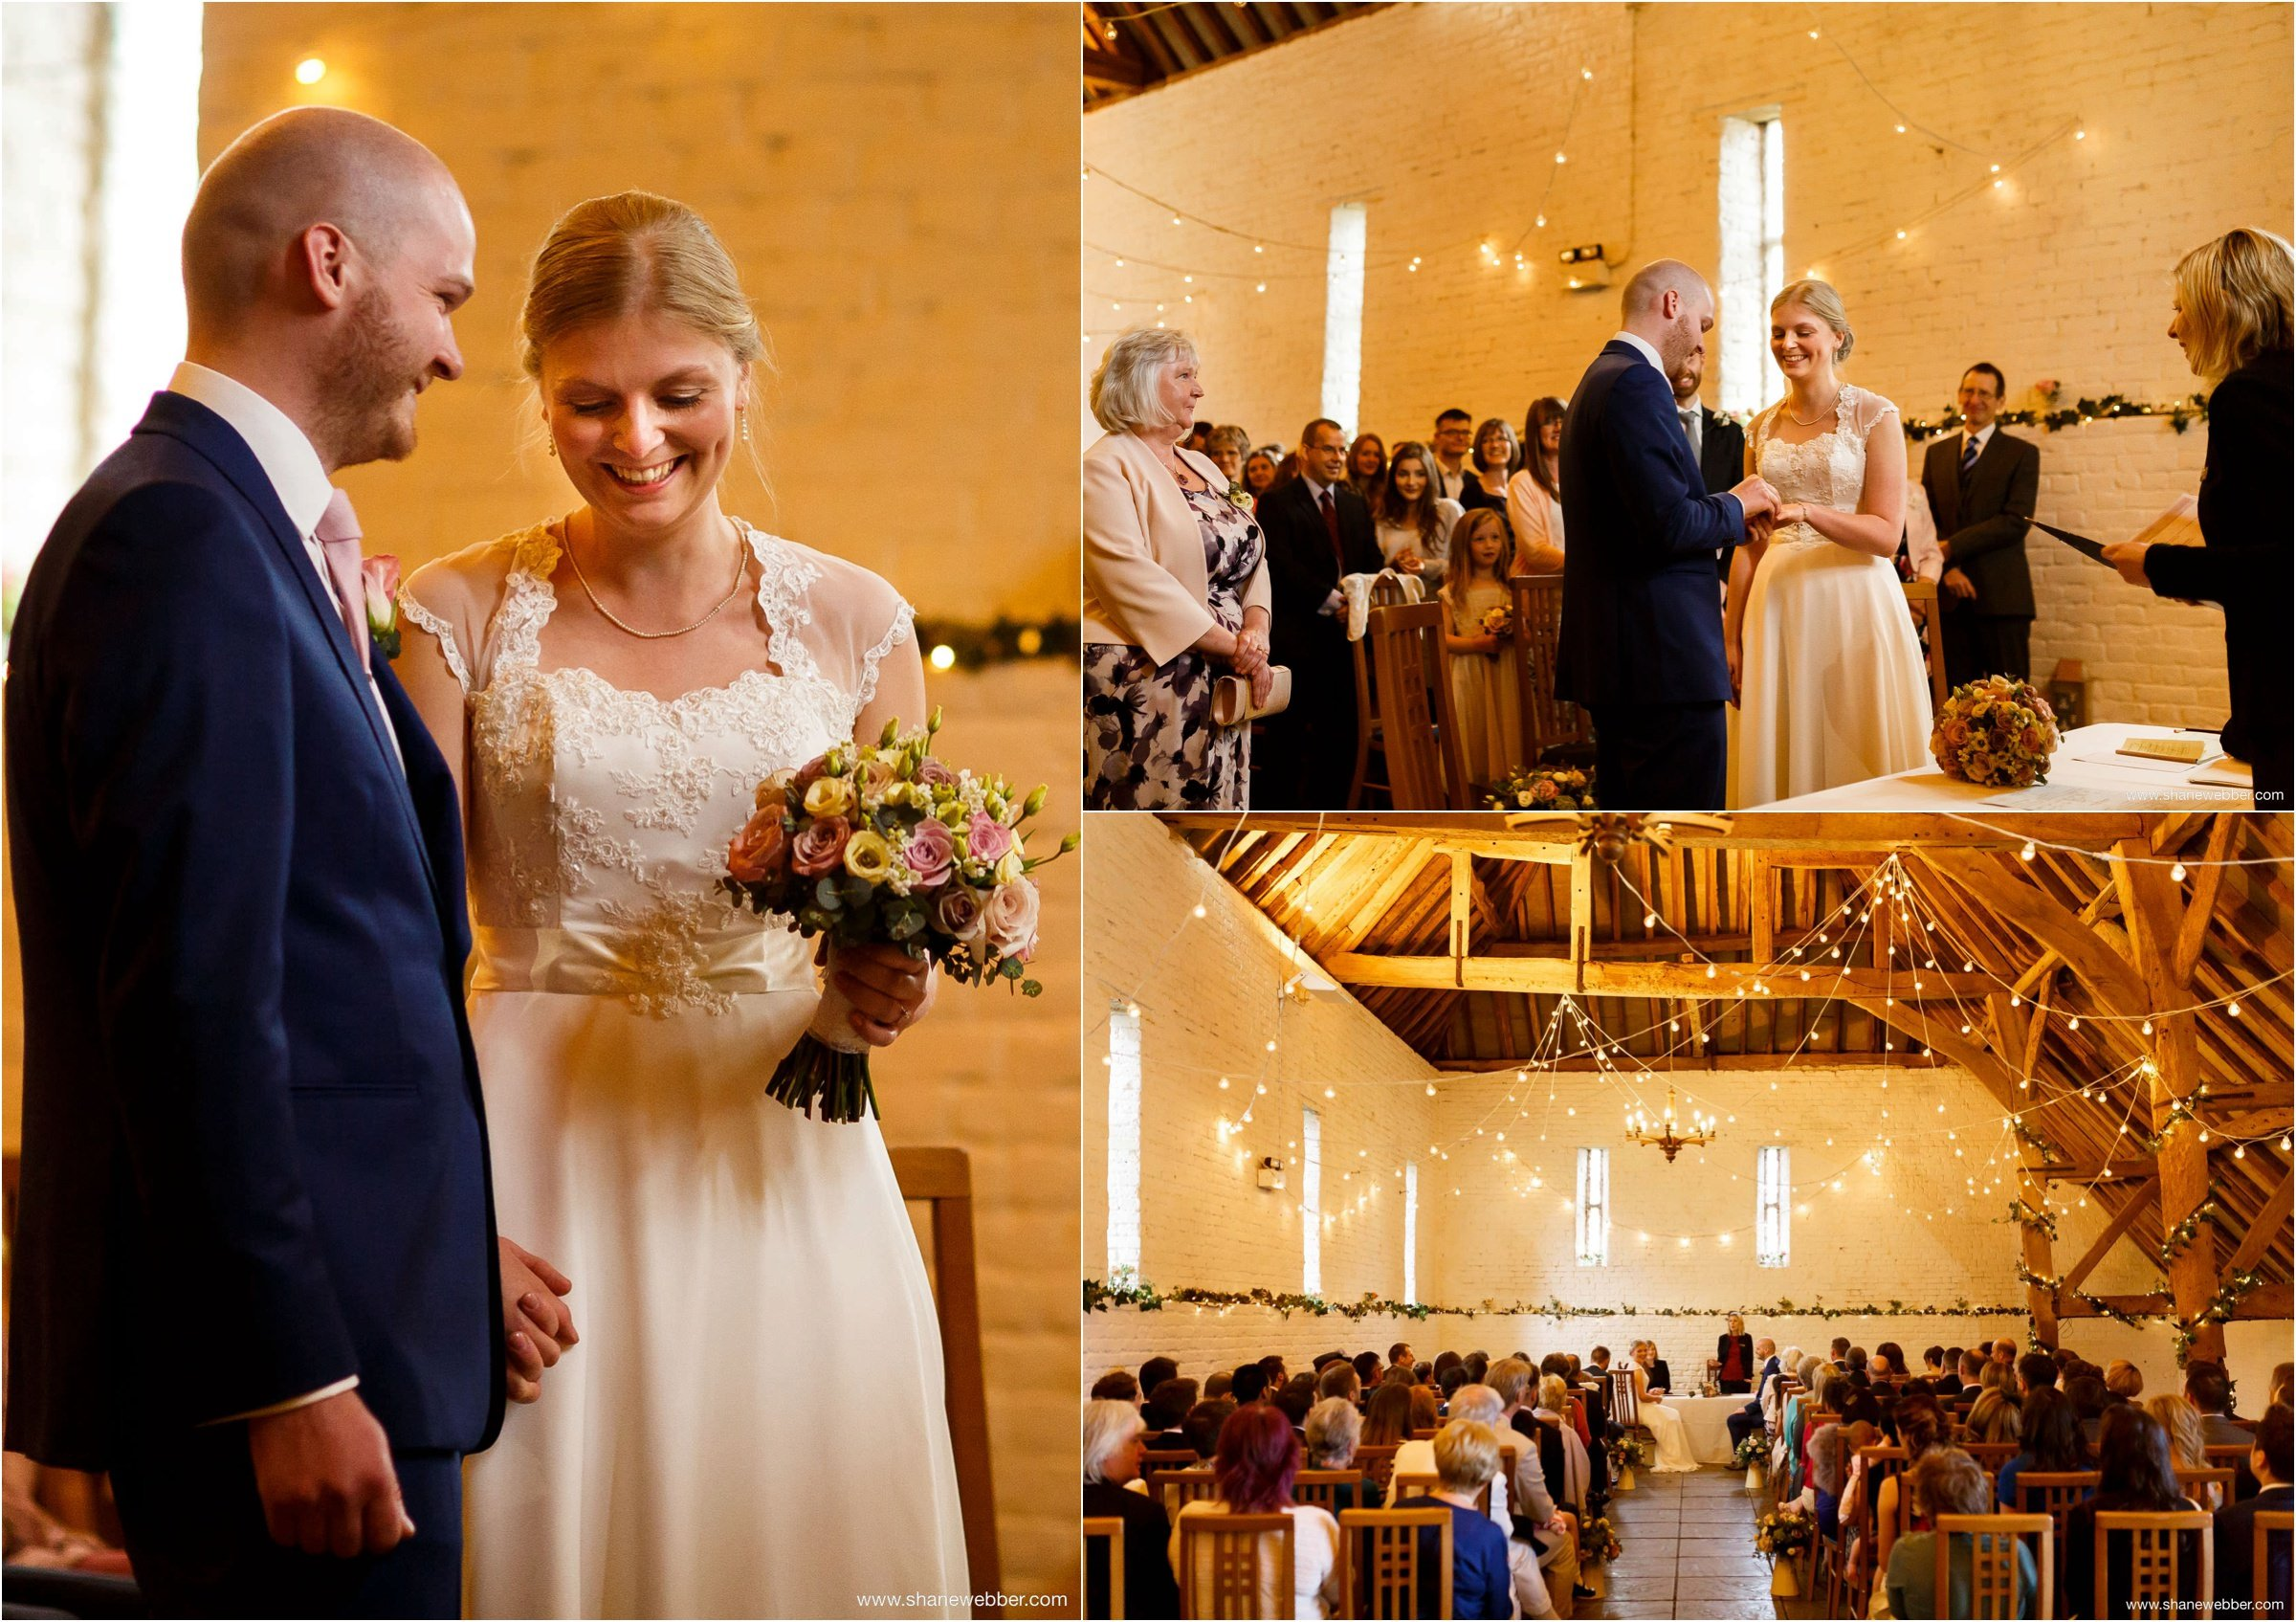 Civil Ceremony at Ufton Court Barn